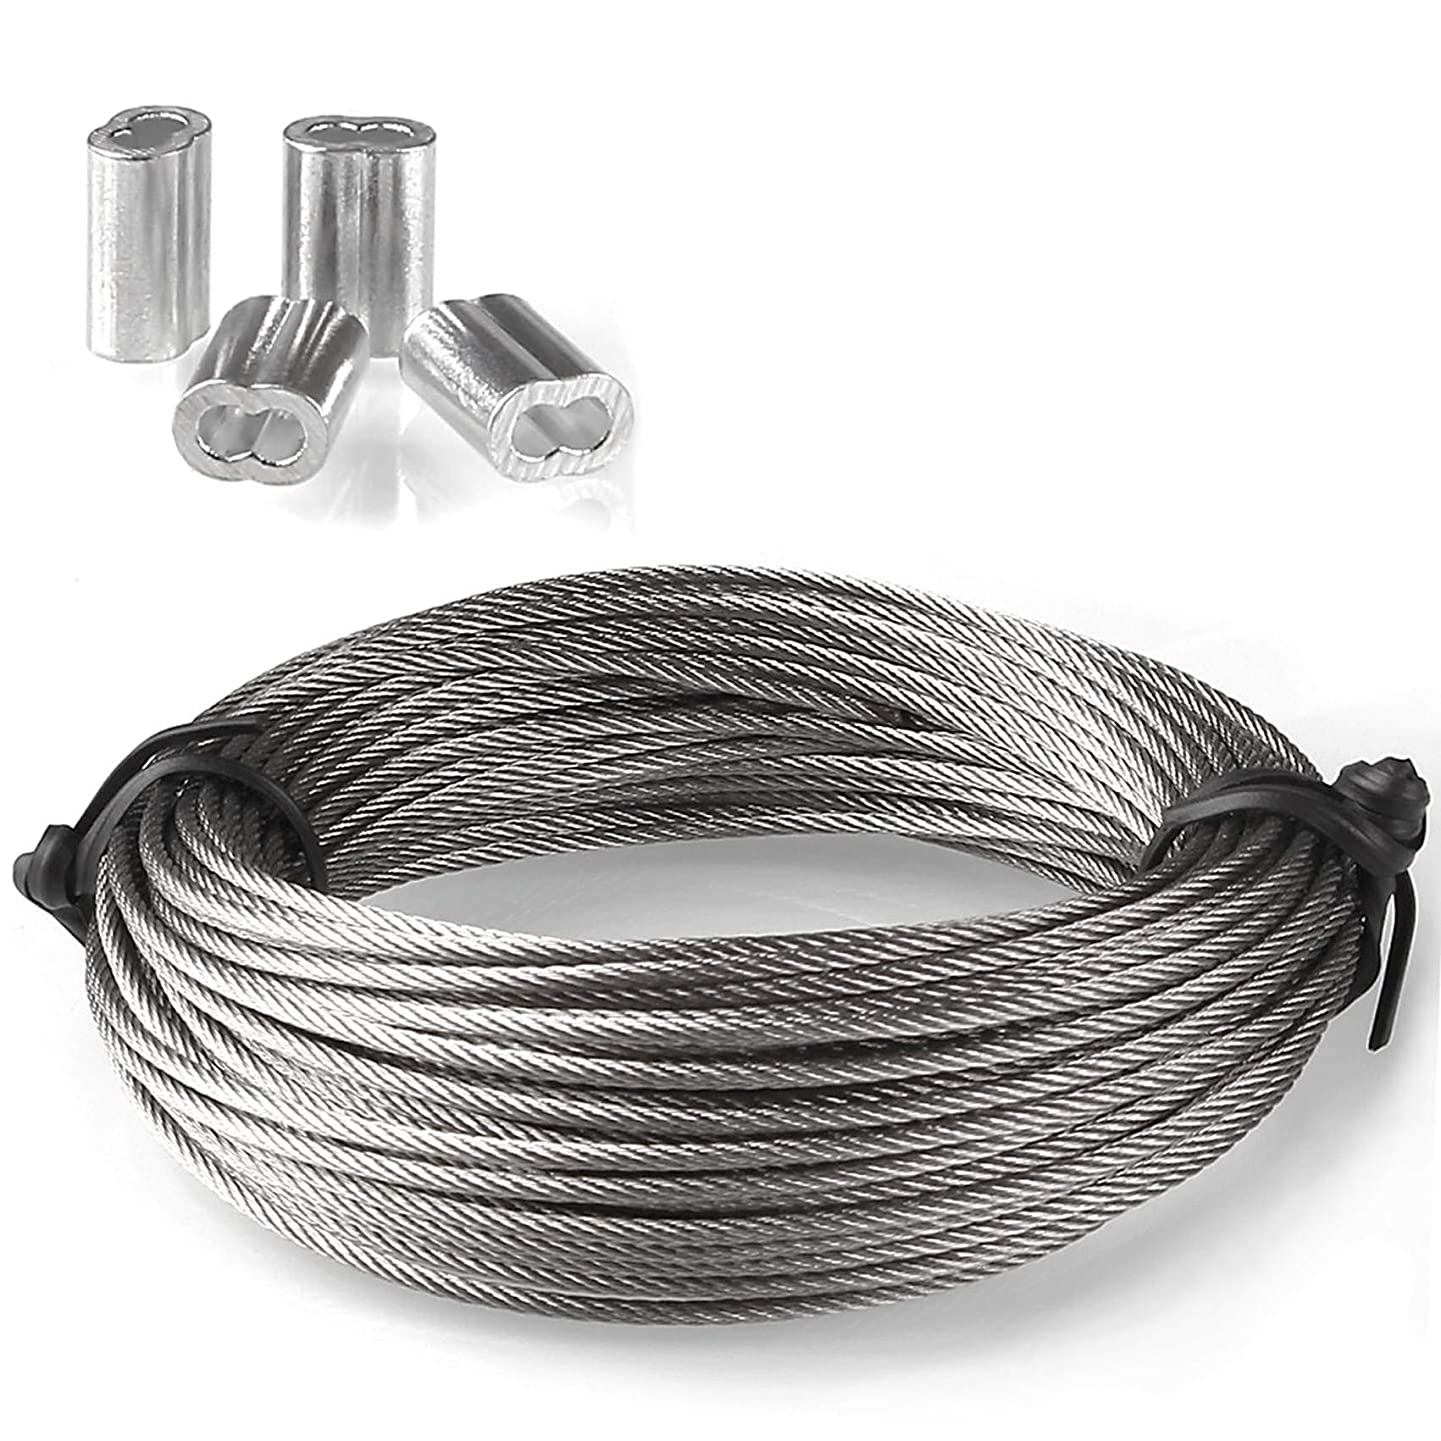 A+Selected 2 Pack 304 Stainless Steel Wire Rope Cable, 1/16 inch Dia, 24.6 Feet Each, 7x7 Wire Rope Designed, Bonus 8 Pcs Aluminum Crimping Loop Sleeve